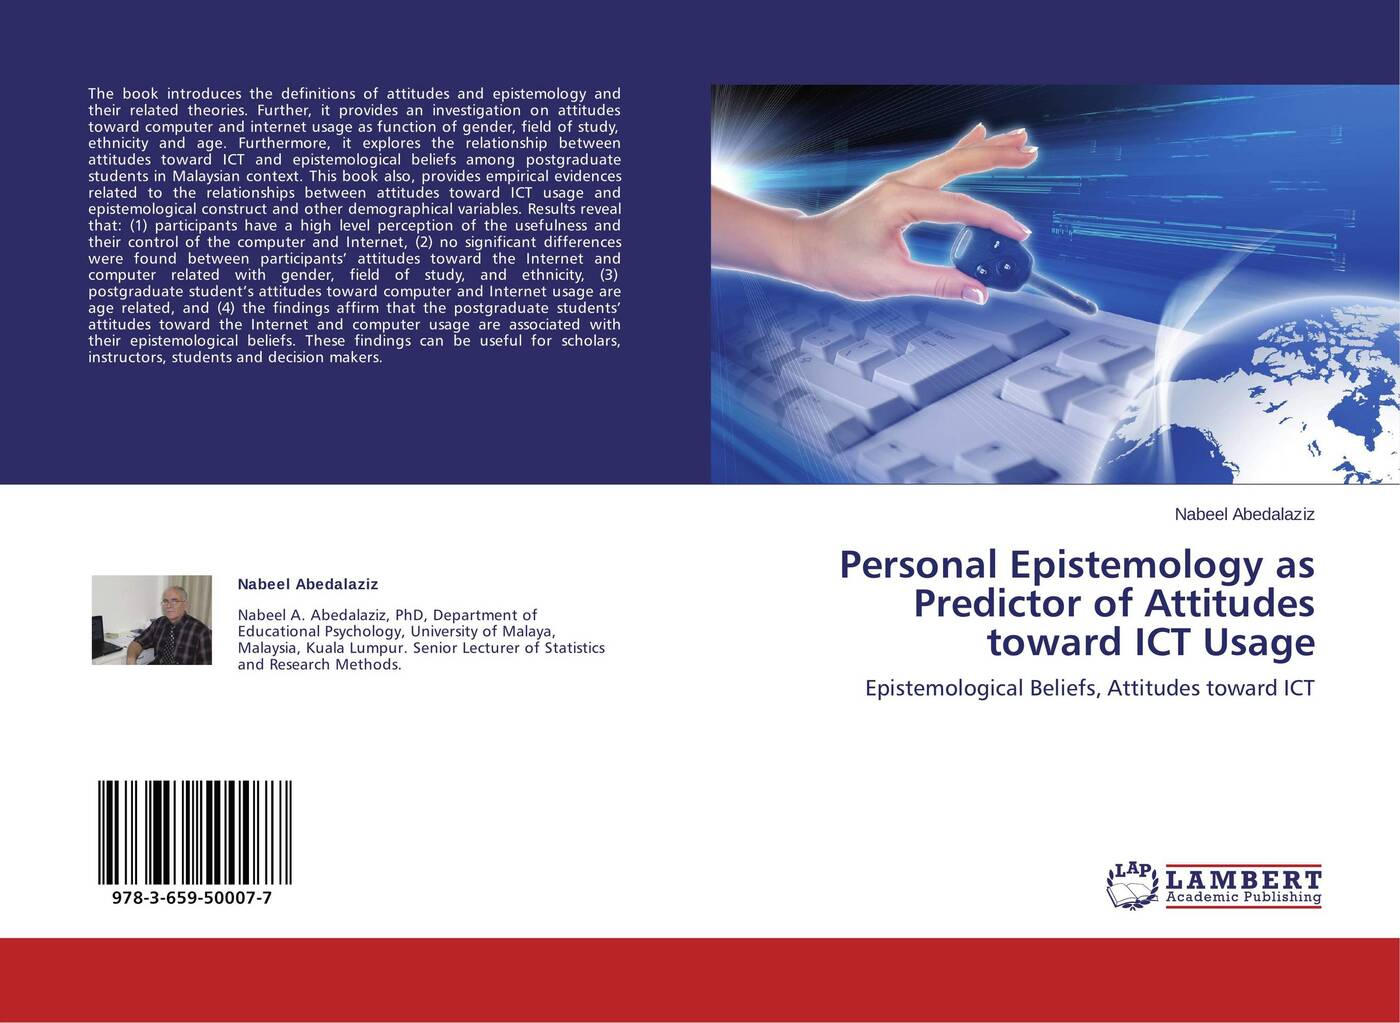 Nabeel Abedalaziz Personal Epistemology as Predictor of Attitudes toward ICT Usage tak ming yu differences in attitudes between younger and older people toward old age implications for counselling